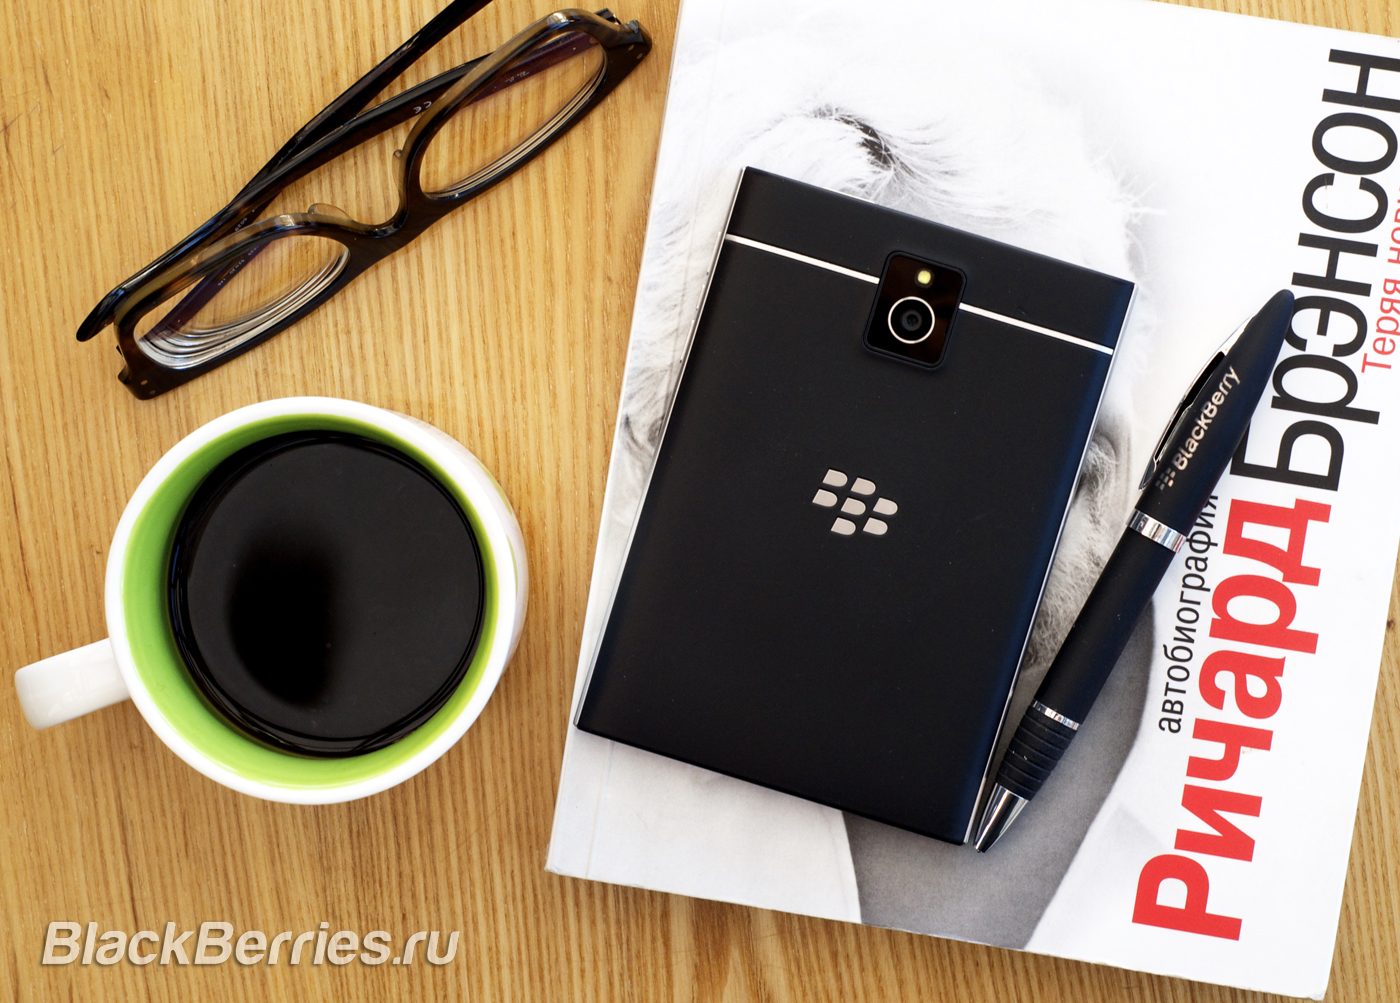 BlackBerry-Passport-3223